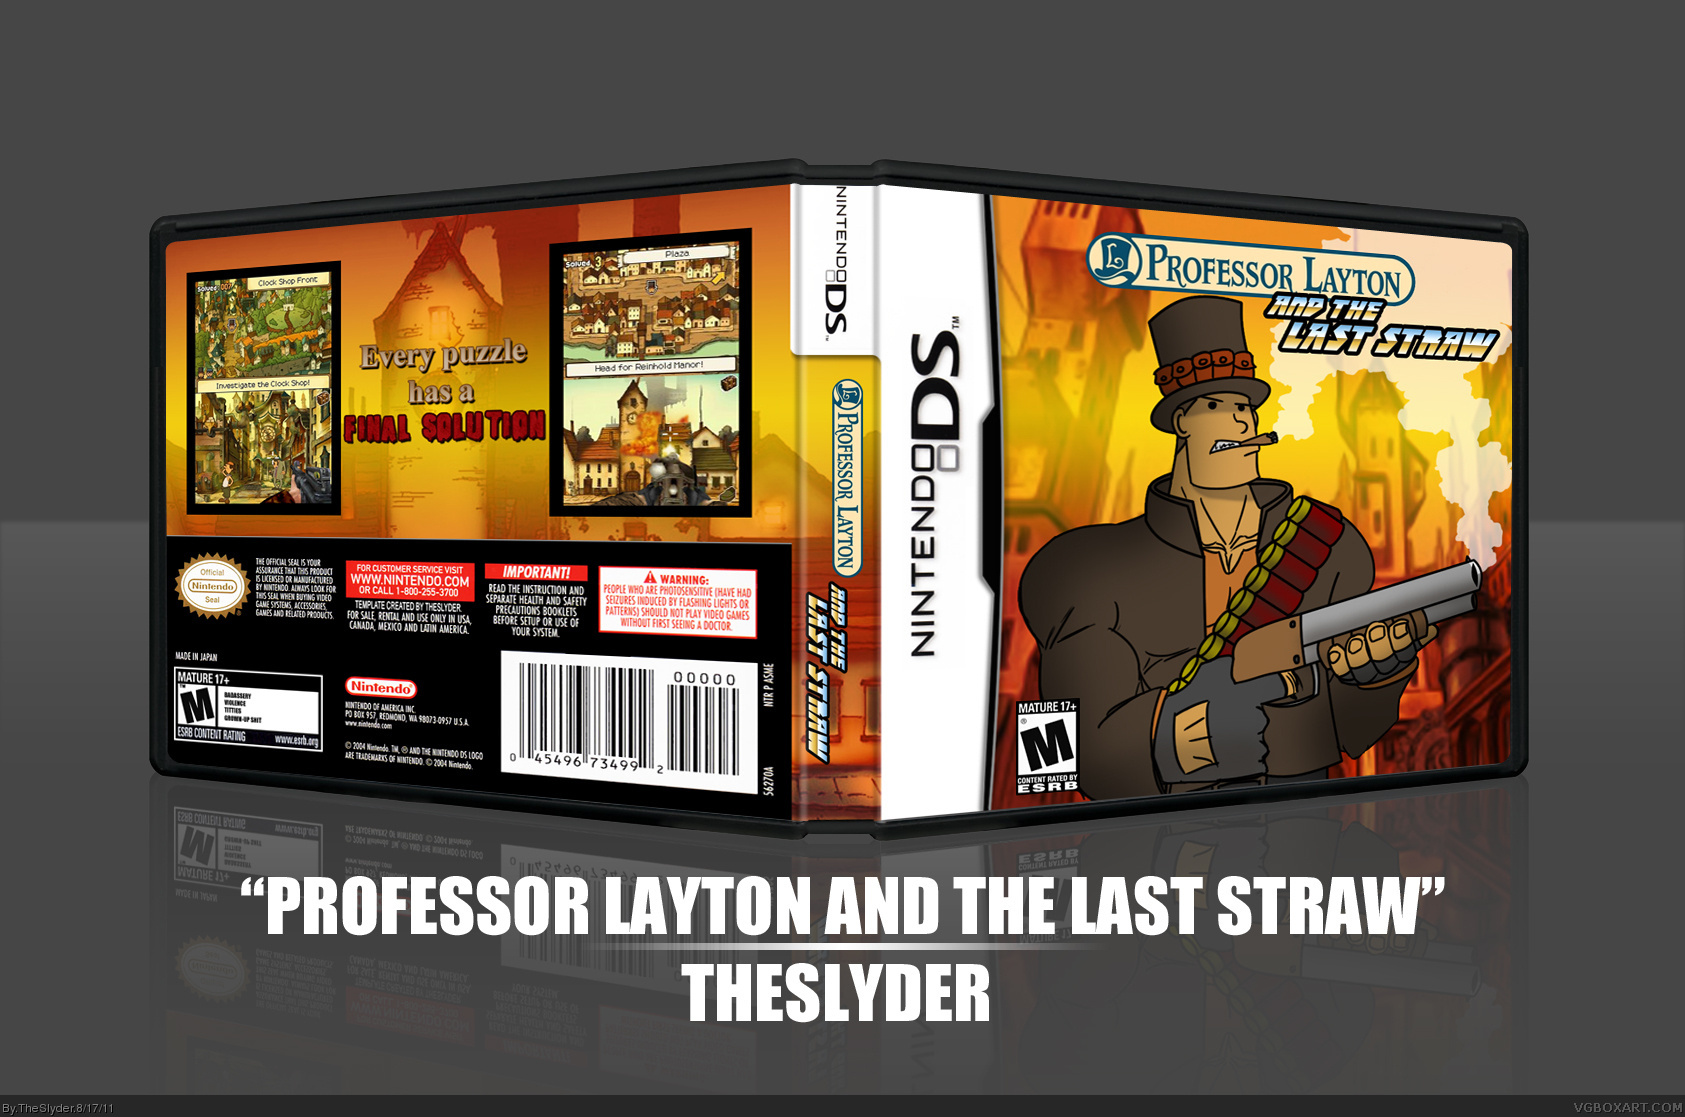 Professor Layton and the Last Straw box cover